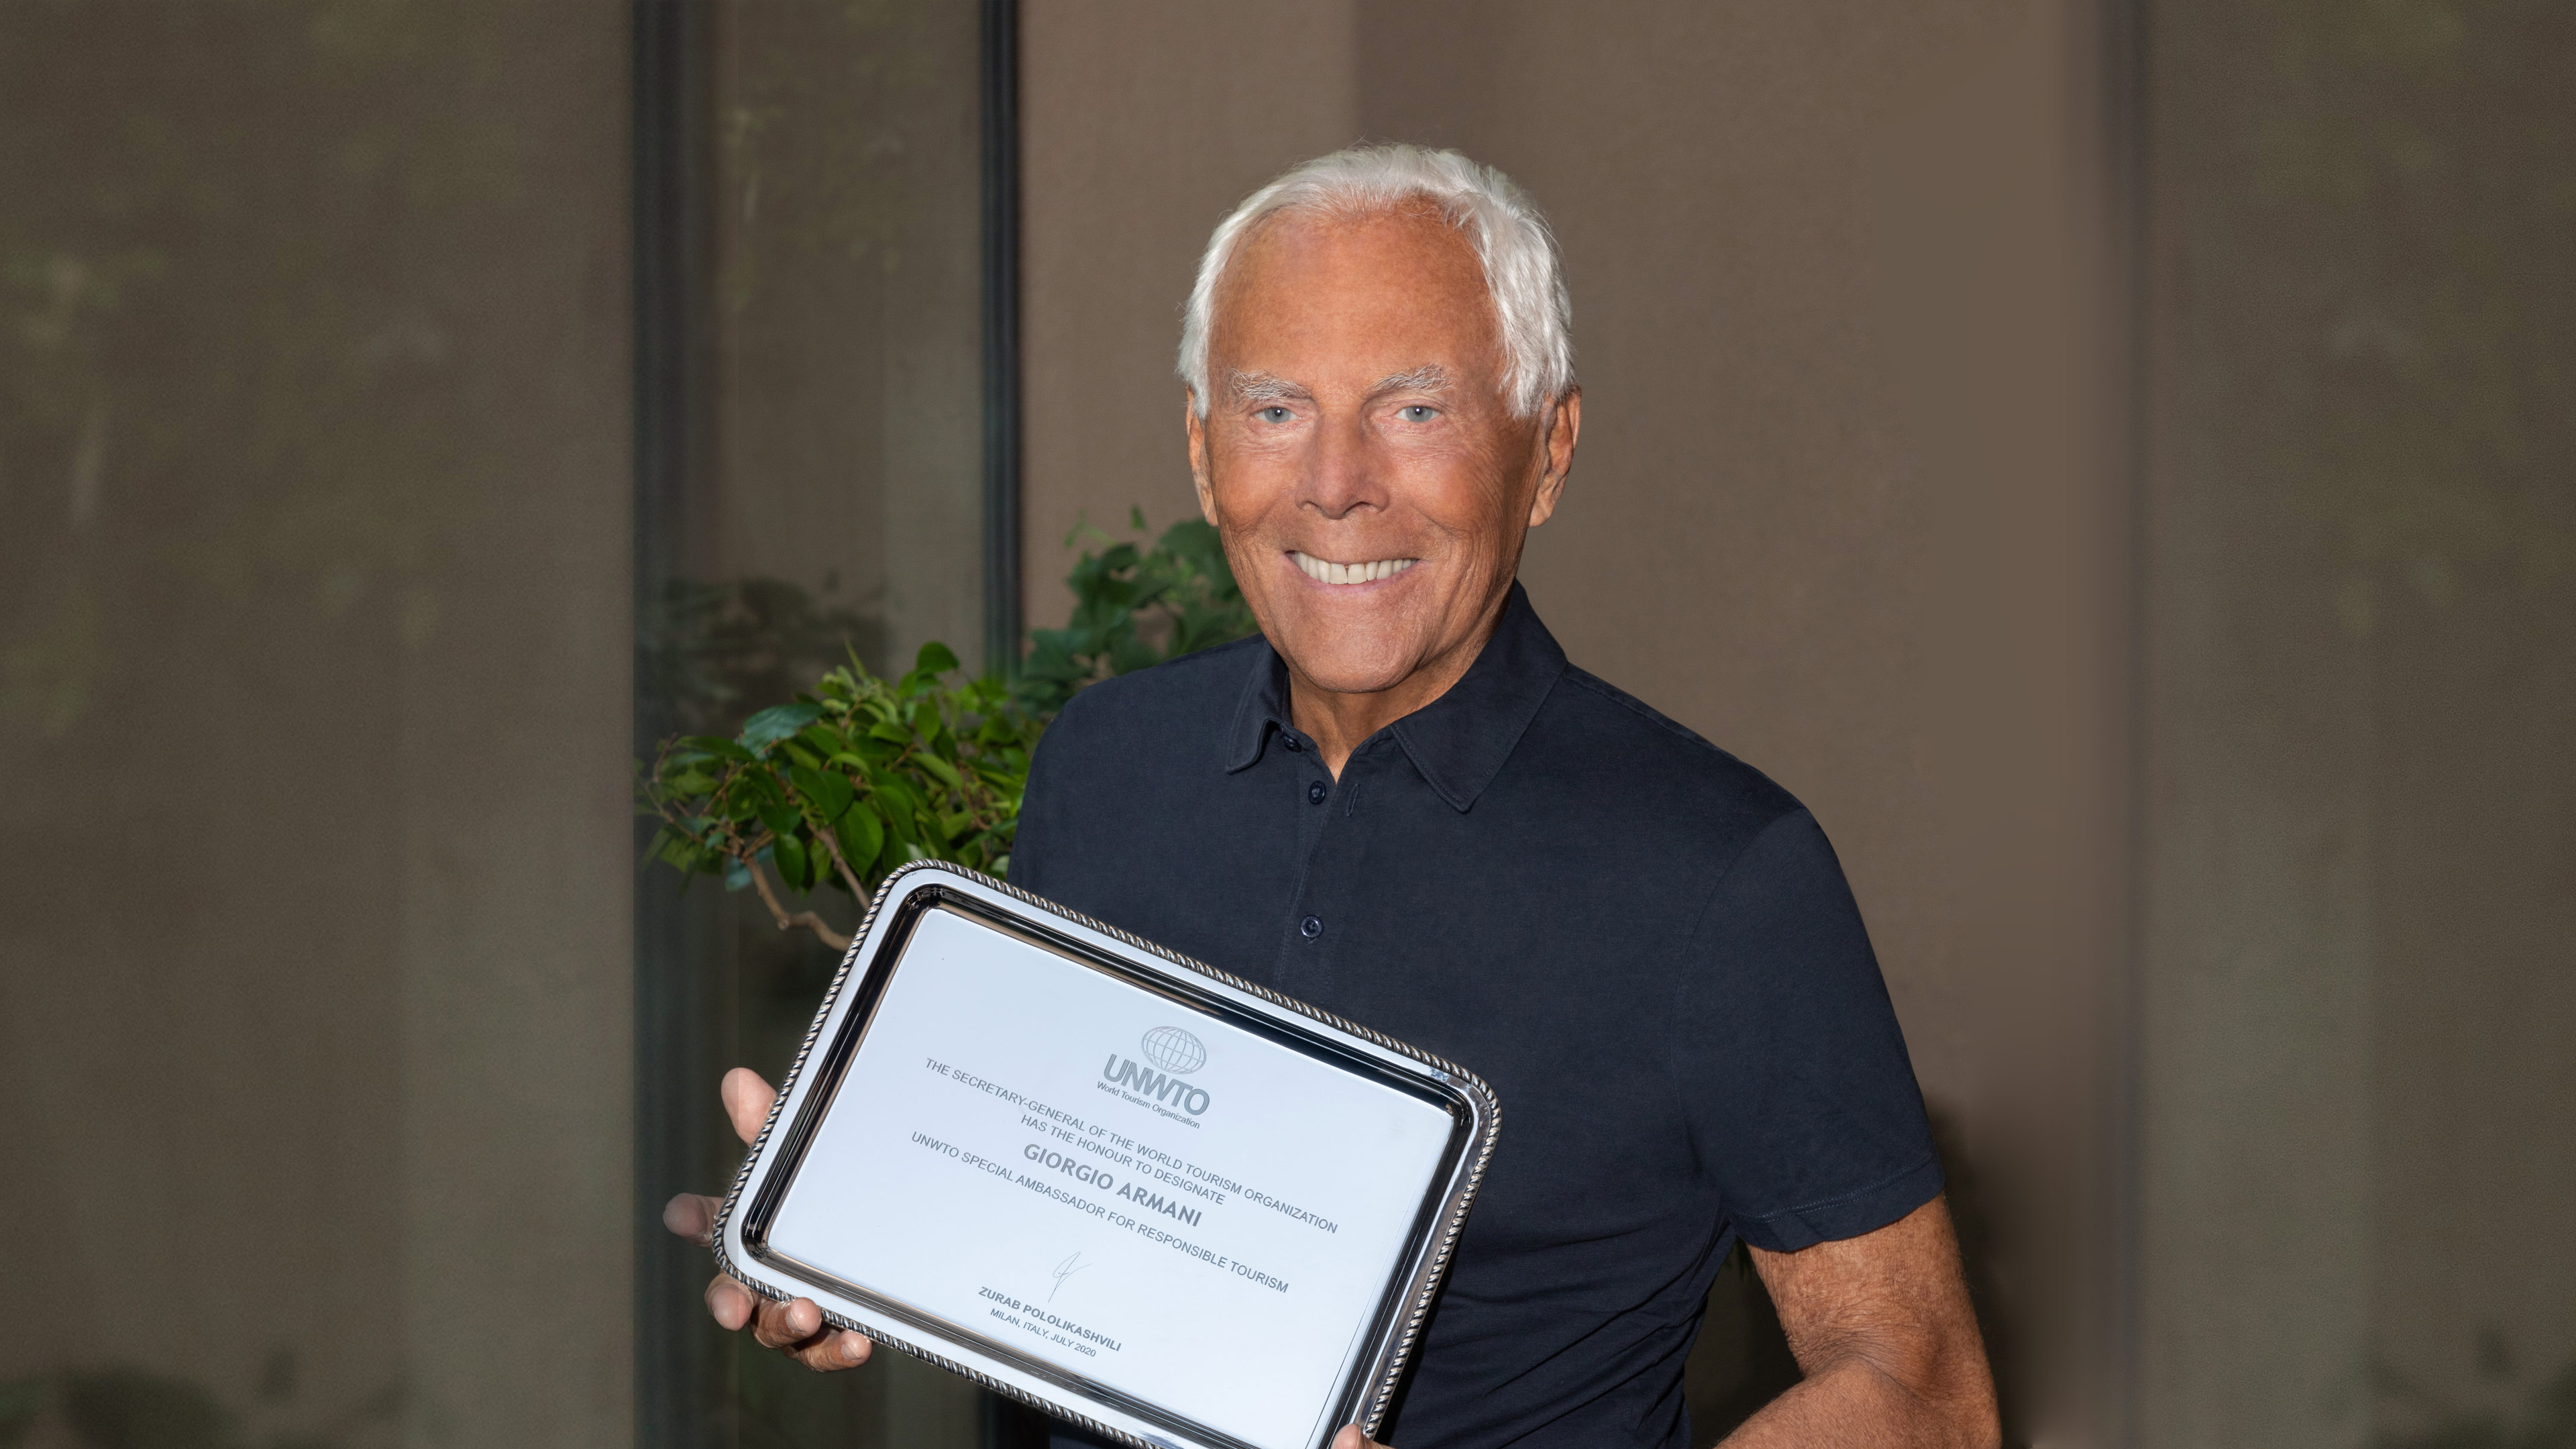 Giorgio Armani and Gino Sorbillo Named New Special Ambassadors for  Tourism as UNWTO Leads Restart of Tourism in Italy